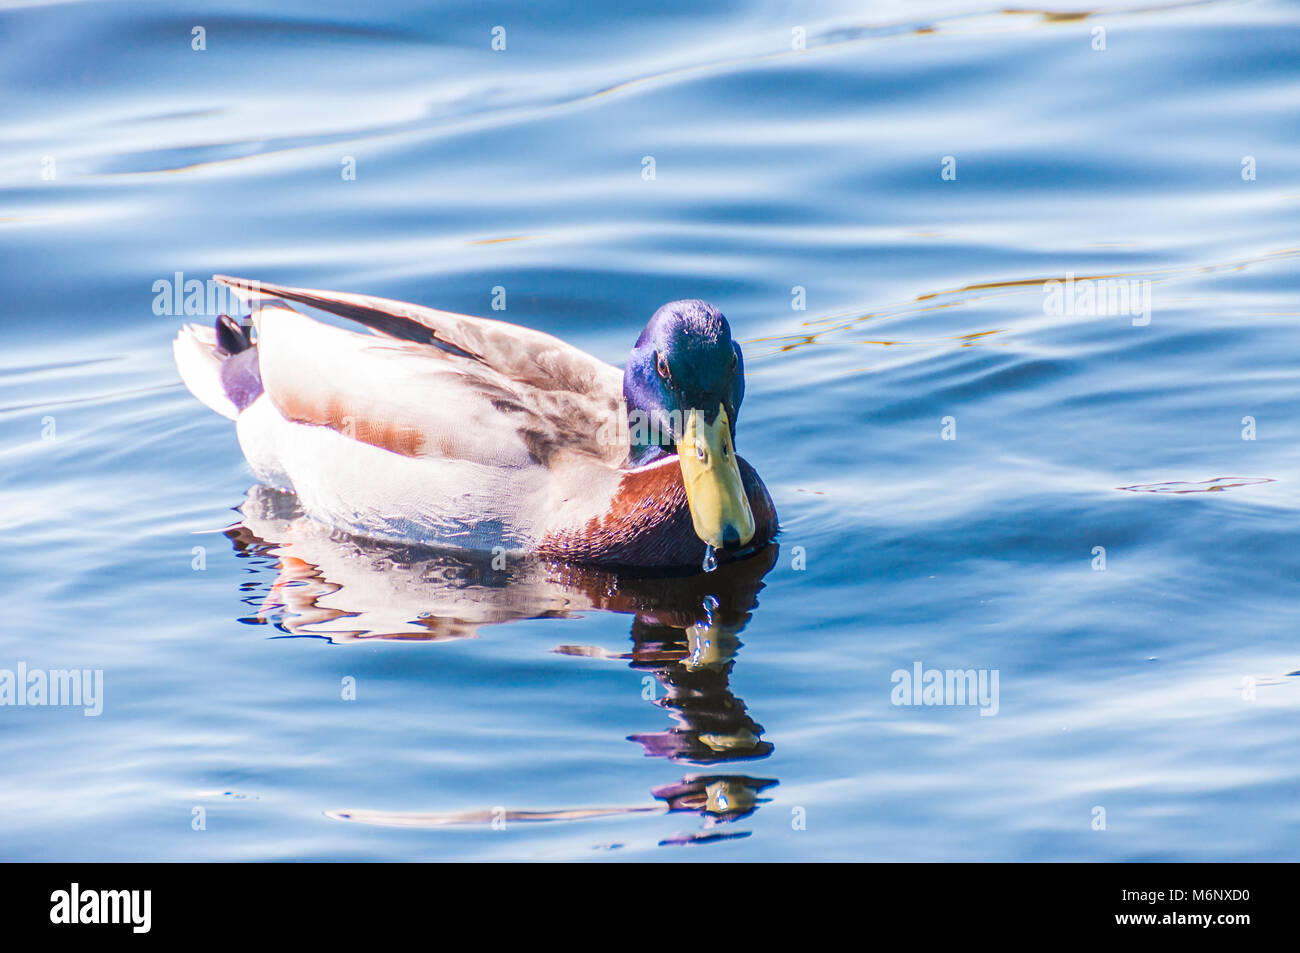 Animal themes. Duck swimming bird close-up shot in lake waters. - Stock Image